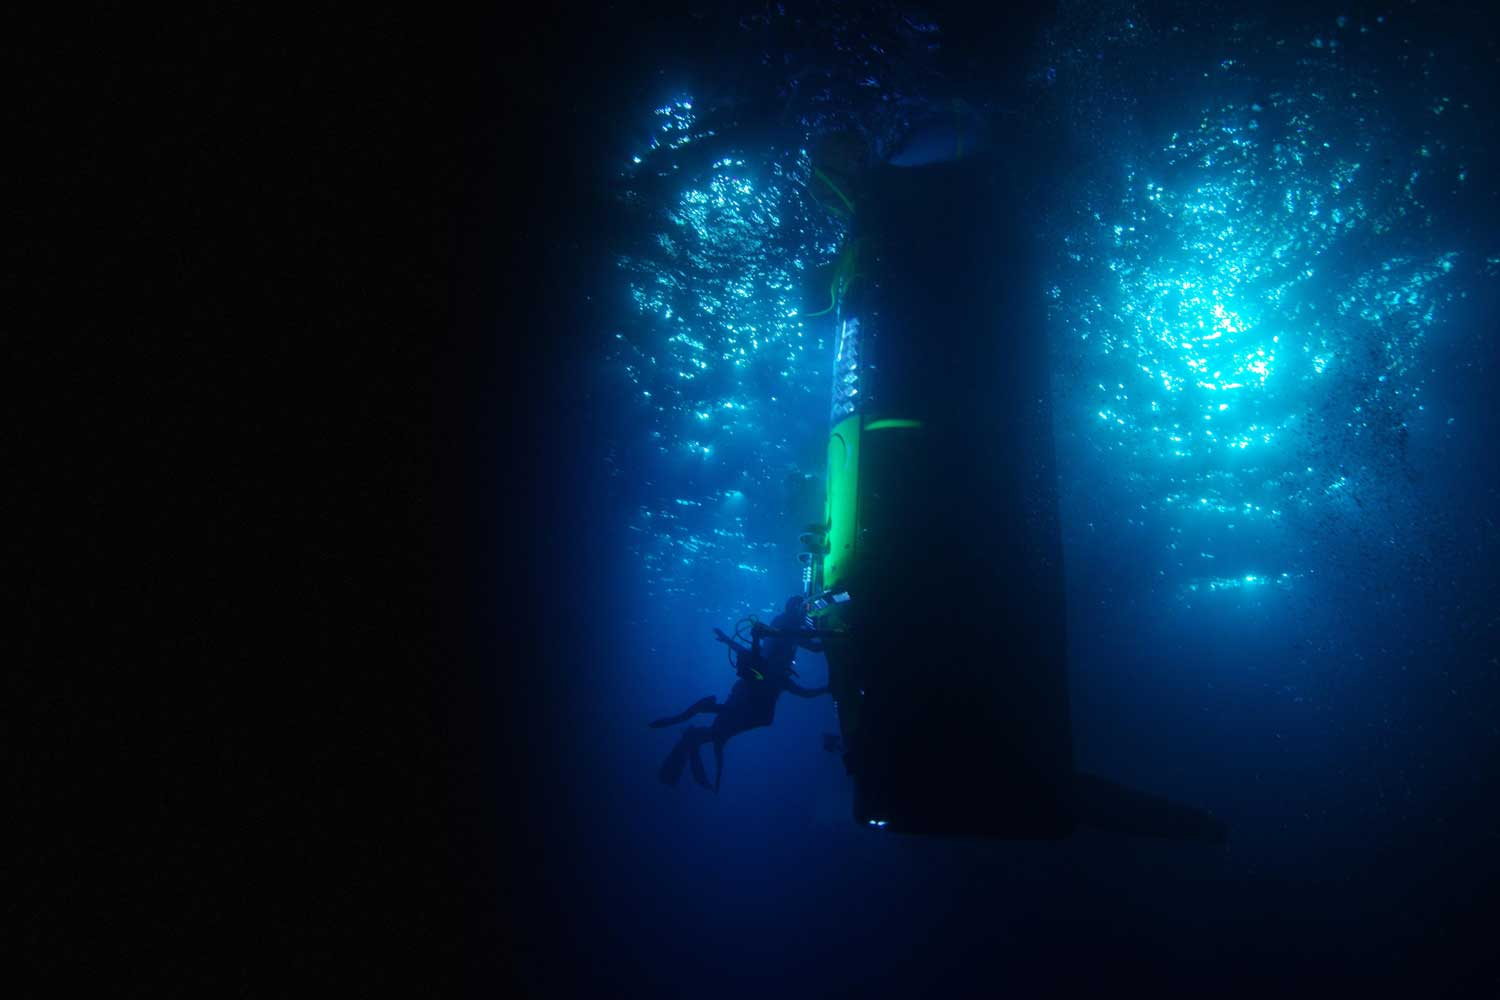 James Cameron's DEEPSEA CHALLENGER submersible on a test dive in Papua New Guinea